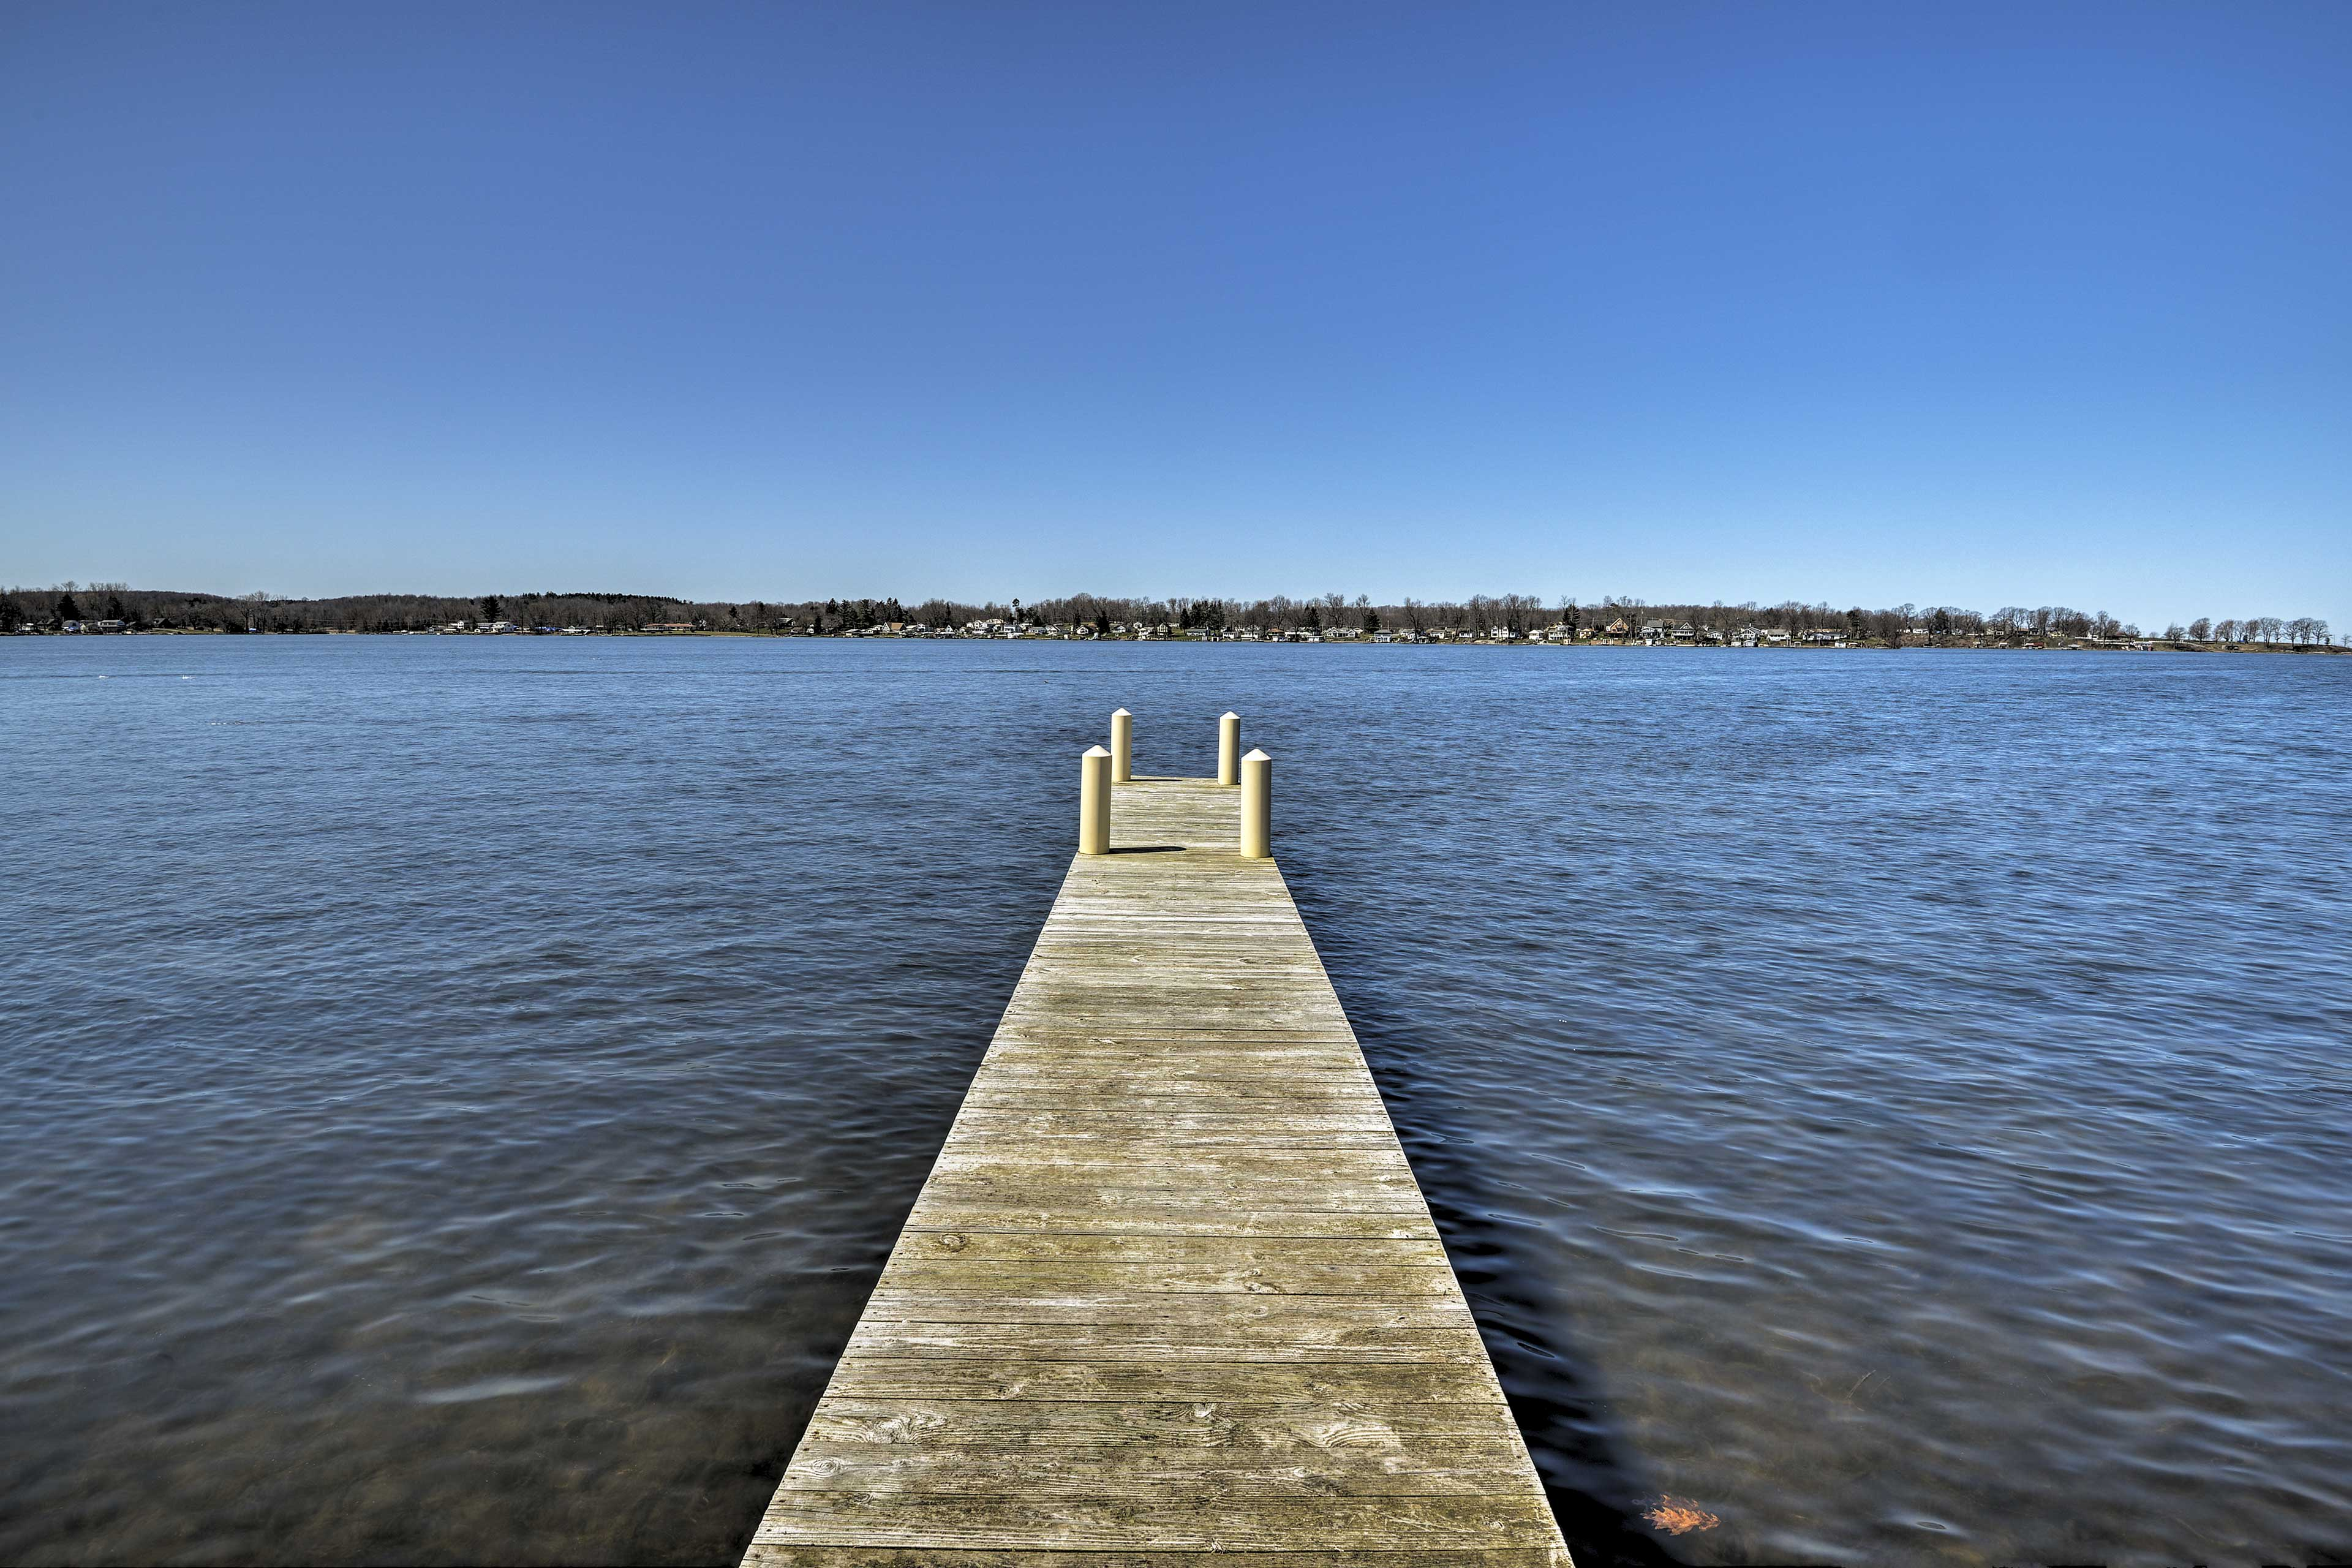 Go for a refreshing swim or park your boat at the private dock.